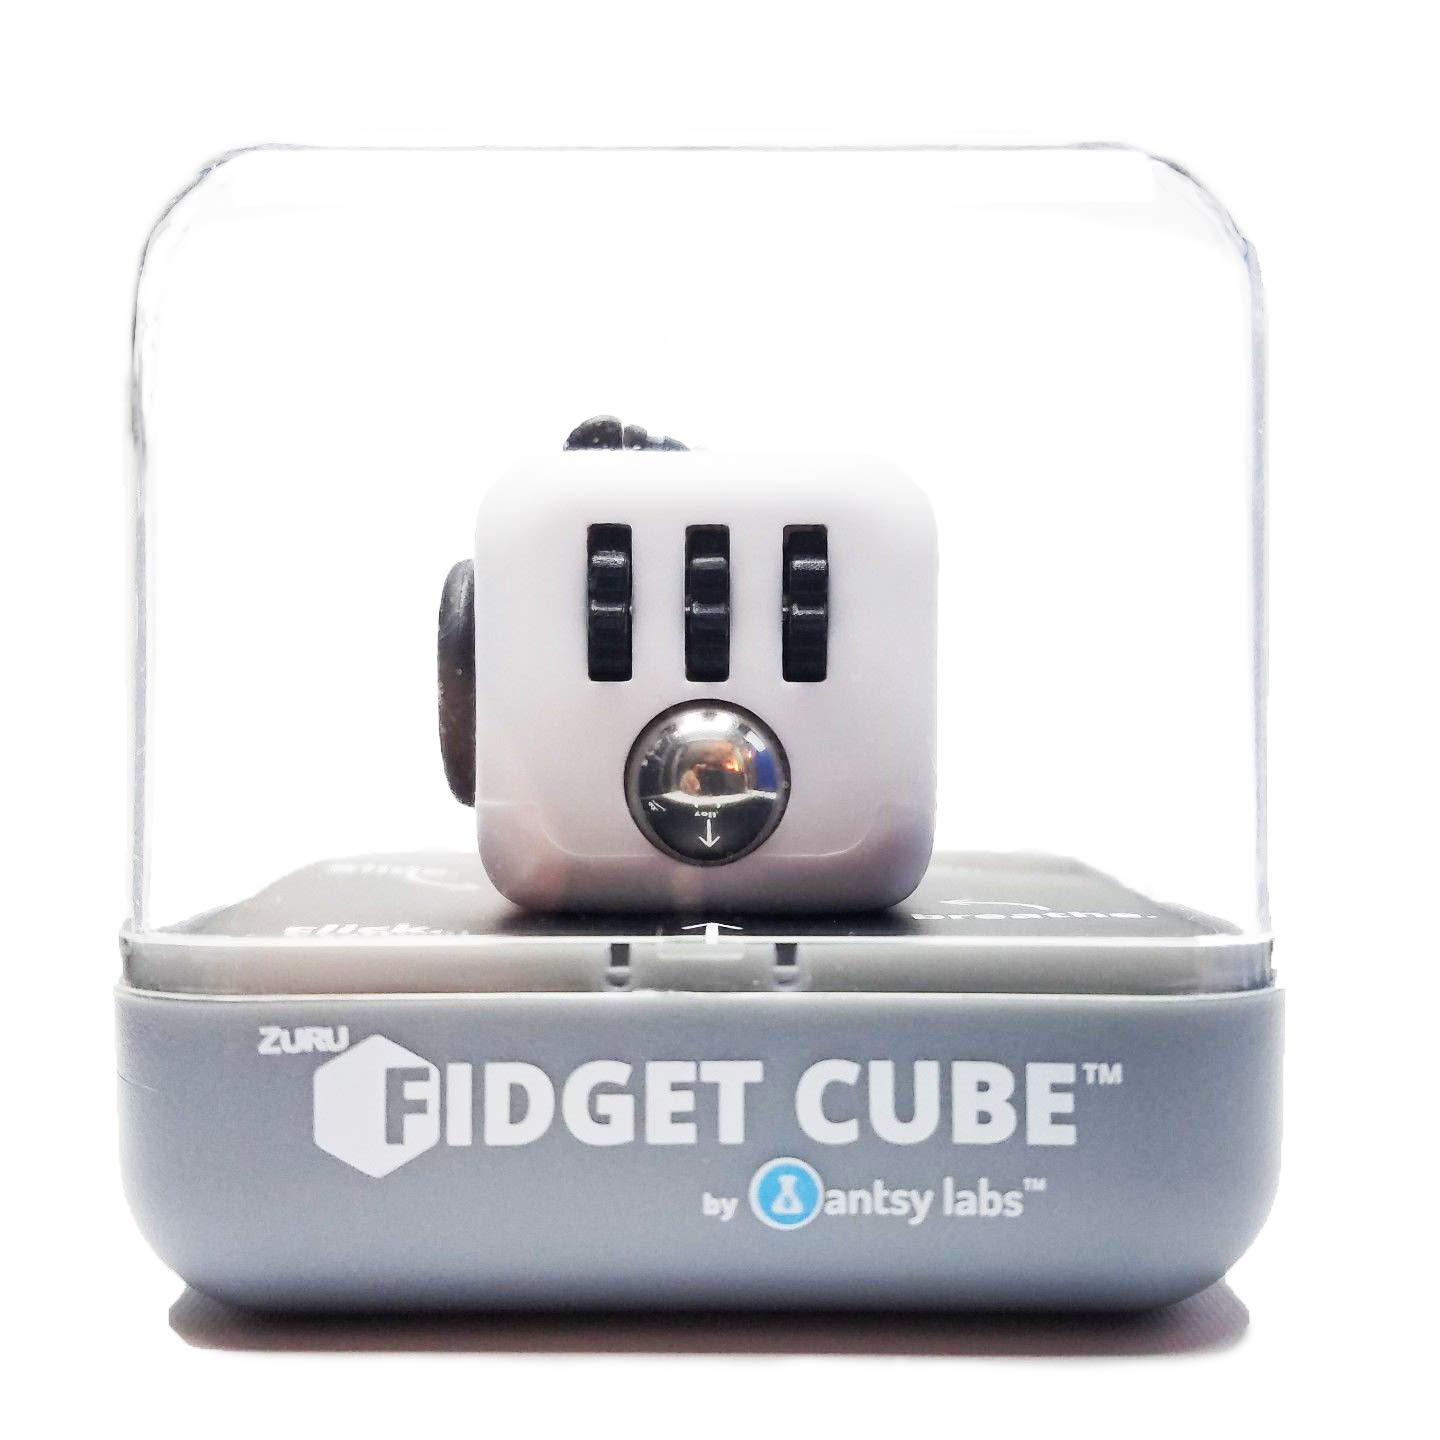 ZURU Fidget Cube by Antsy Labs White/Black - The Original and Still the Best Anti-Stress Toy, Fidget Toy Designed to Help you Focus by ZURU (Image #2)